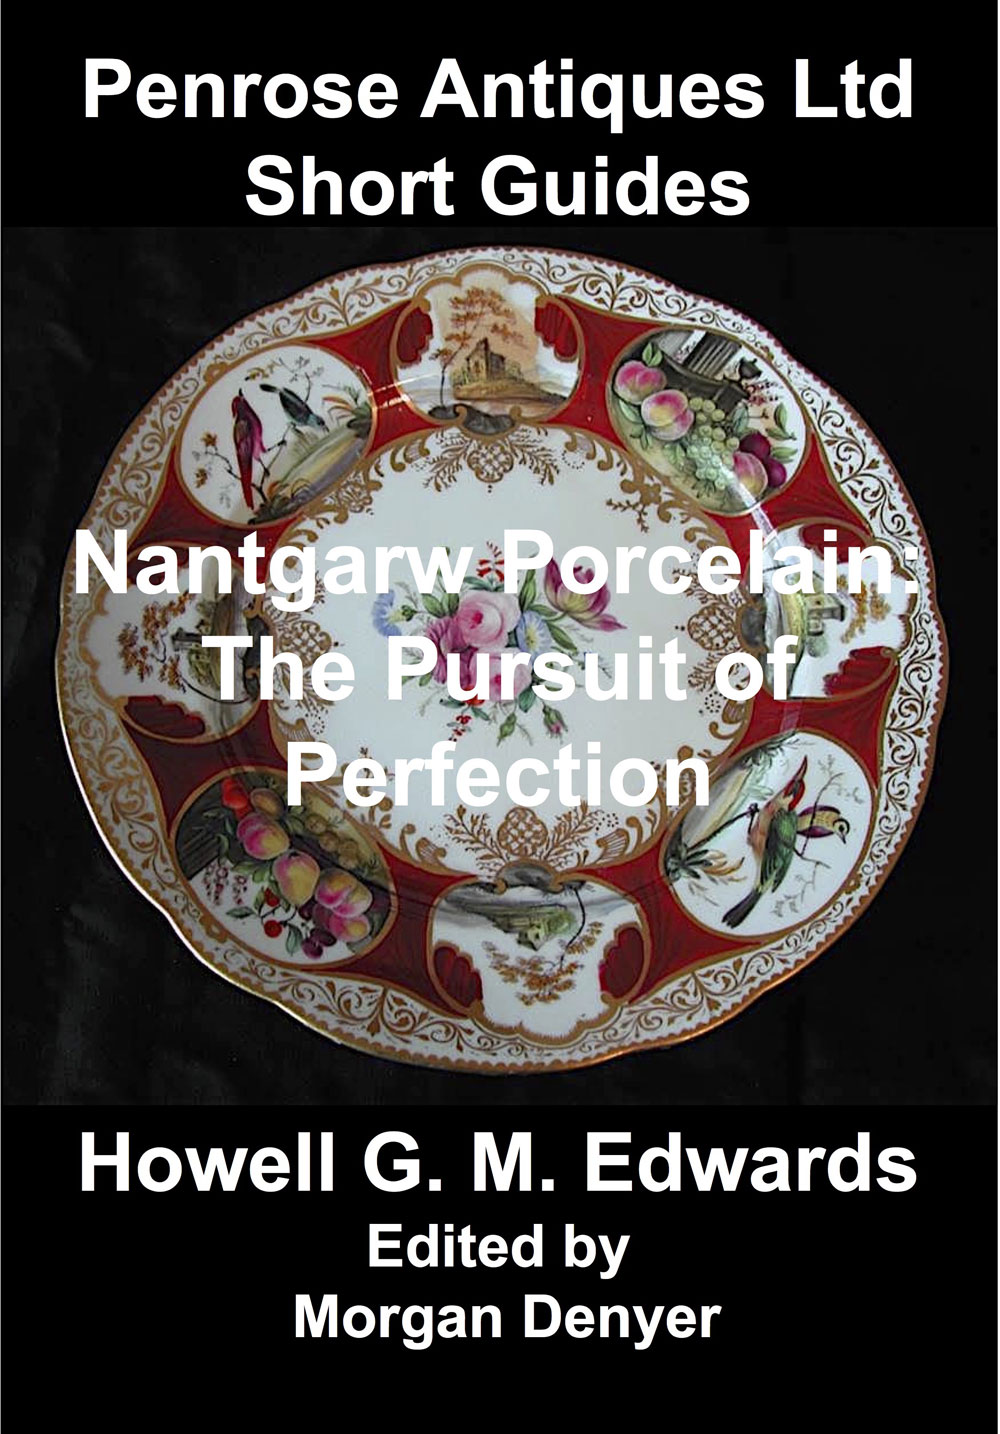 Antiques News - New eBooks Series for the New Generation of Antiques Buyers